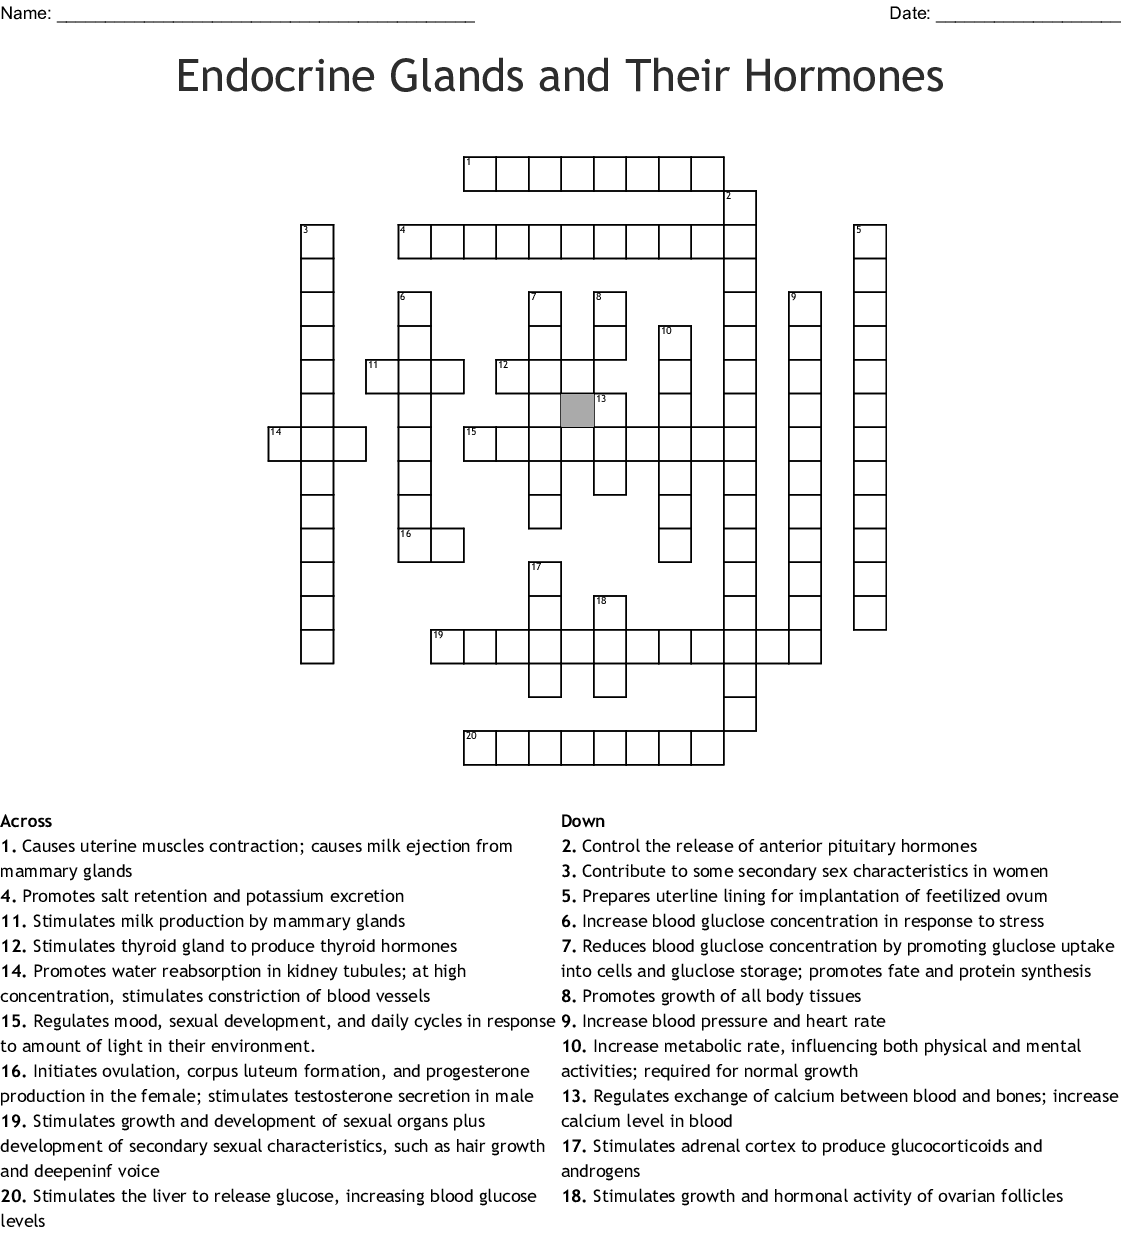 Endocrine Glands And Their Hormones Crossword